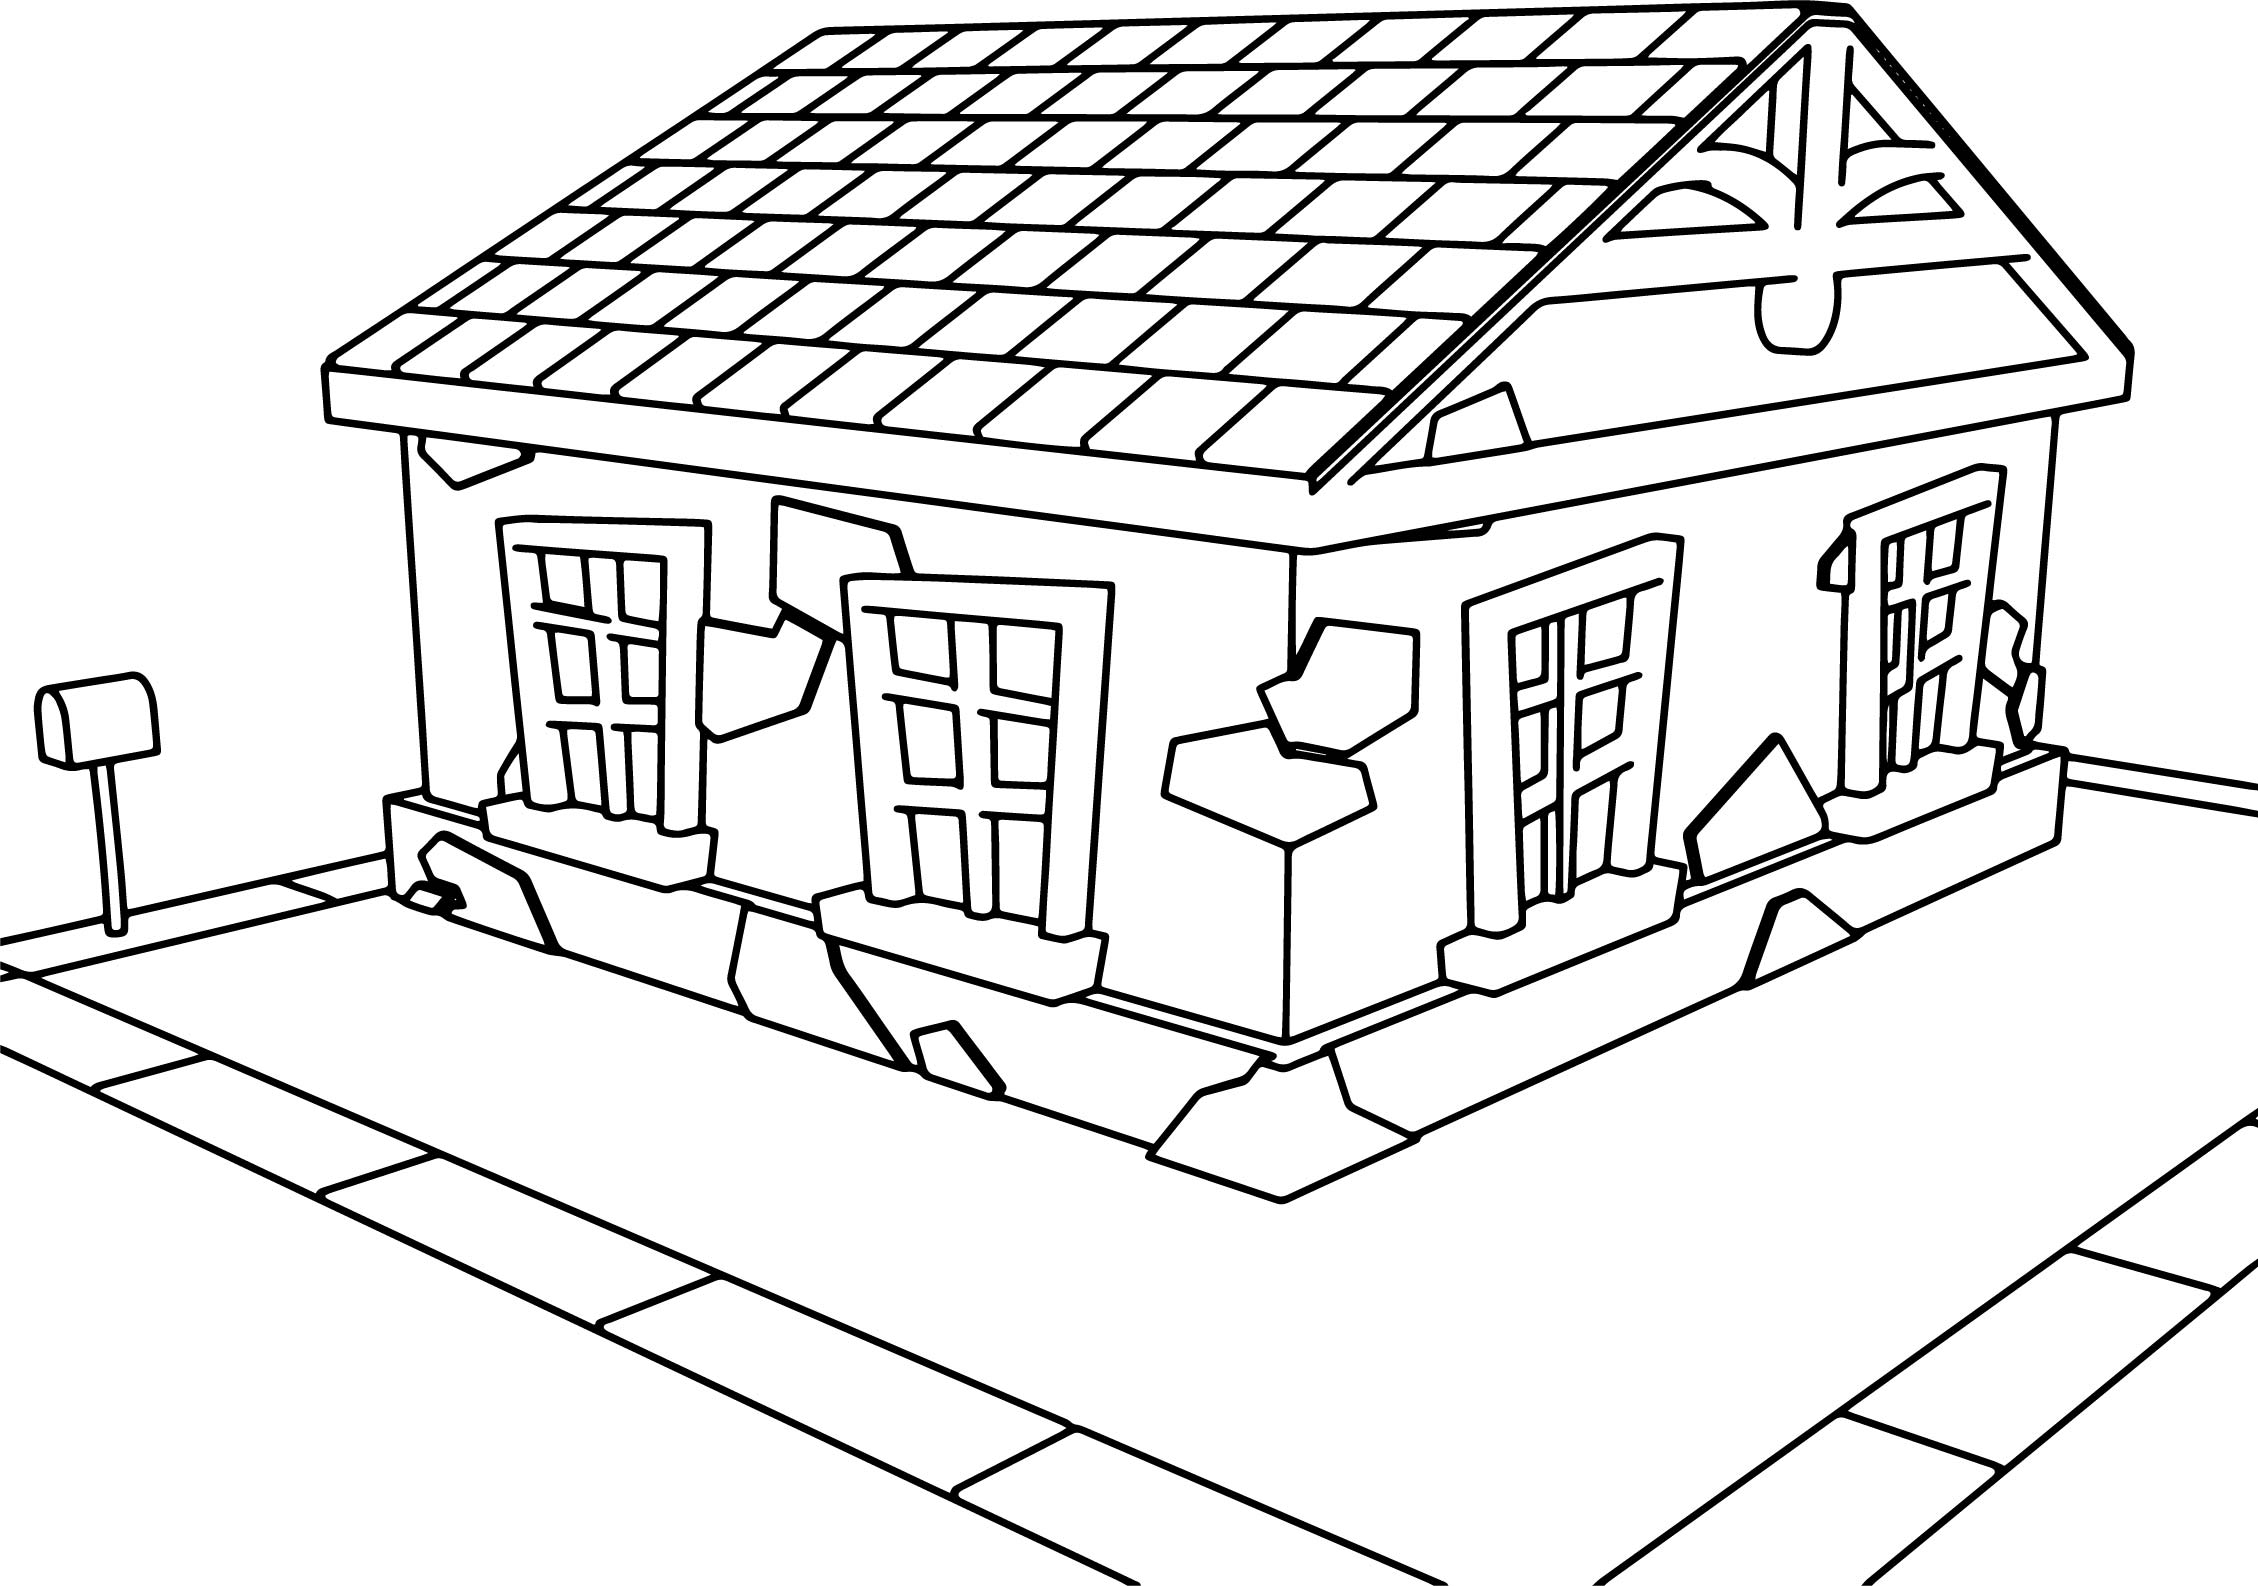 Tooned Cartoon House Coloring Page